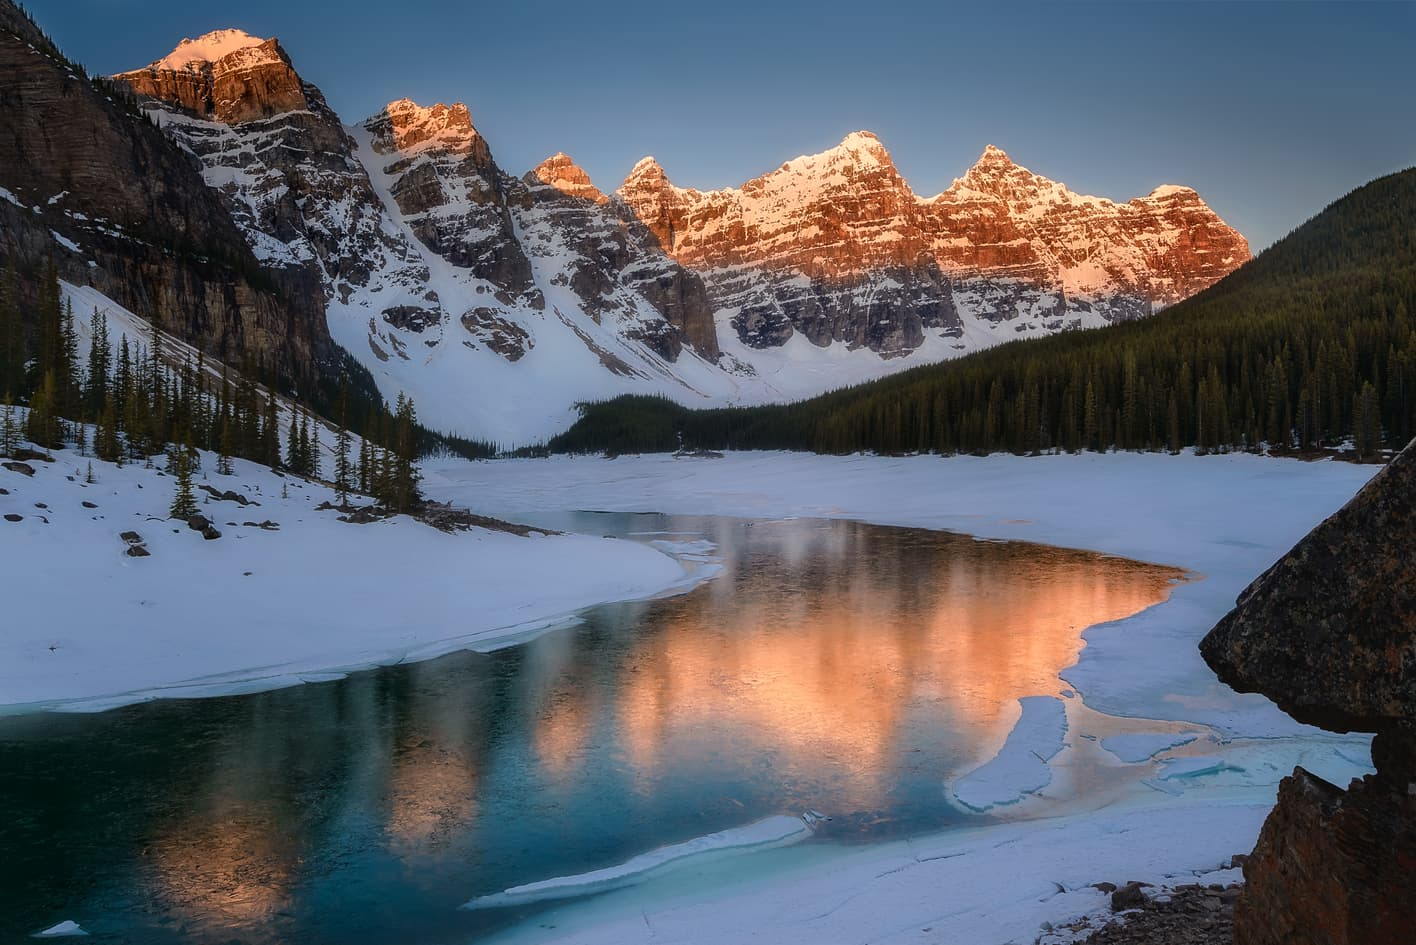 Moraine Lake Banff 15-day canadian rockies photo trip and workshop